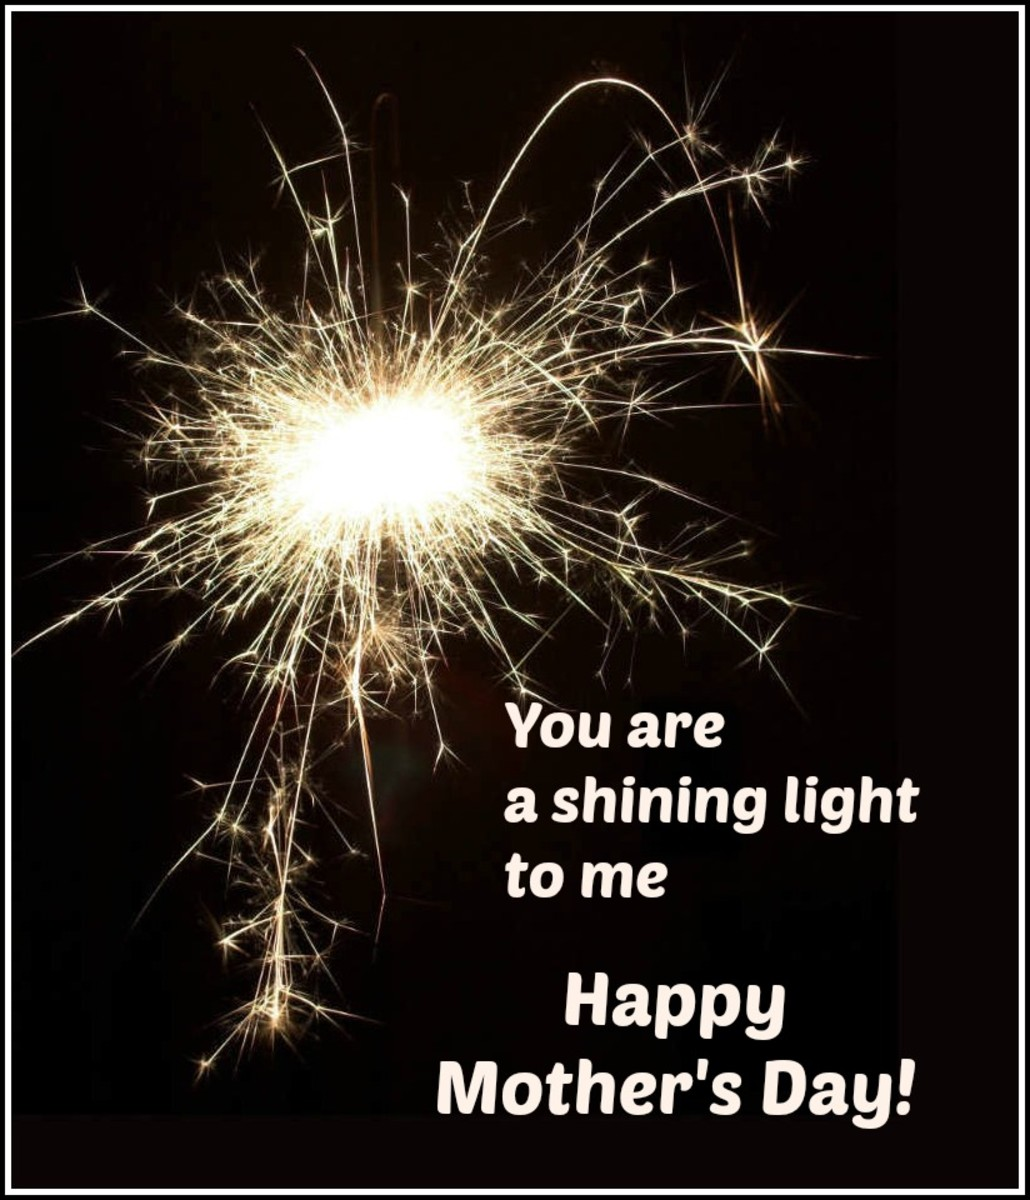 Mother's Day Card with Fireworks